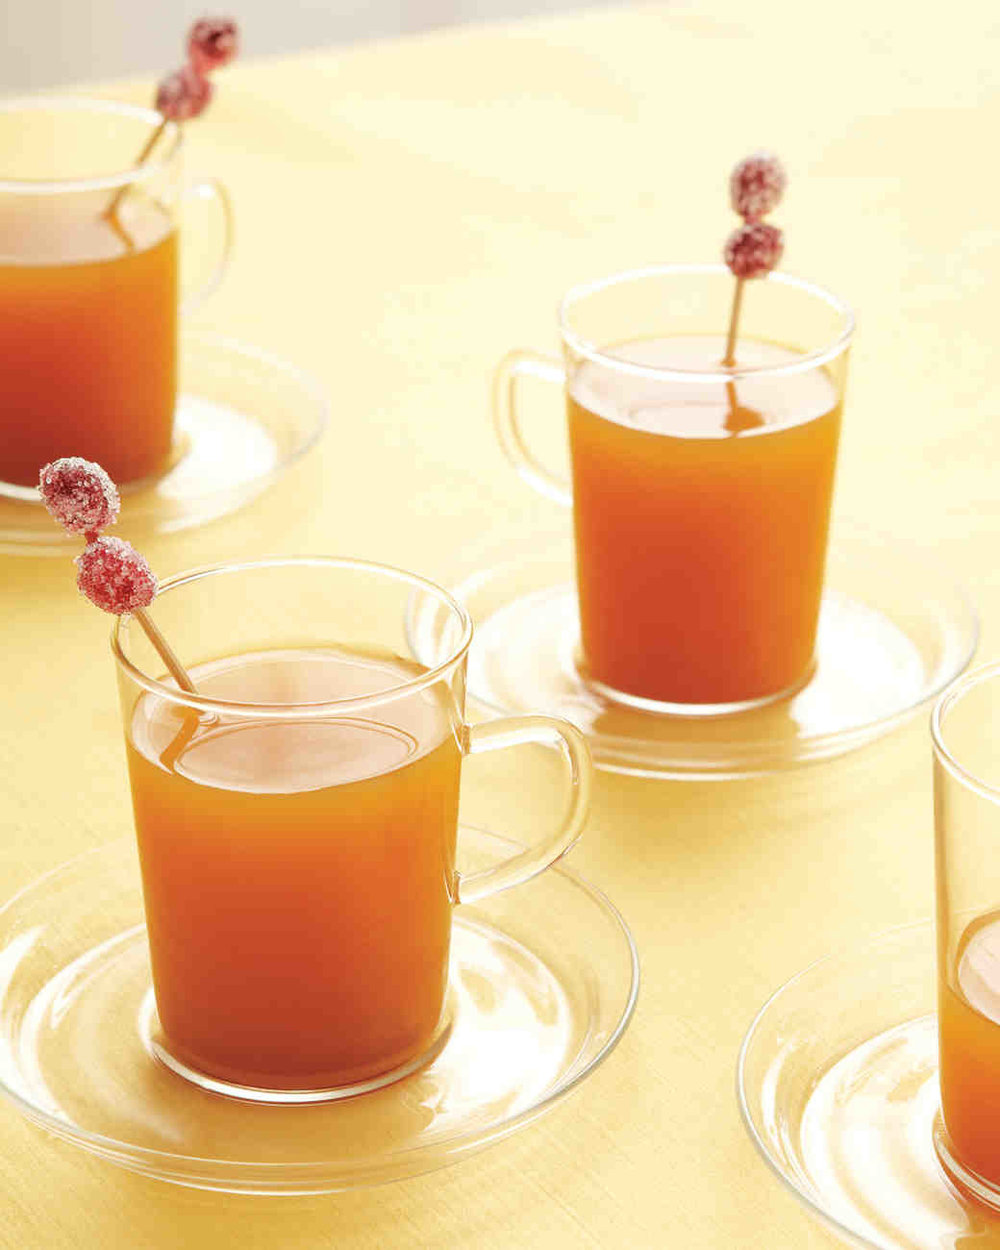 Hot Apple Cider with Sugared Cranberries - Add a dash of the hard stuff, and hot apple cider turns into a cocktail with a kick.